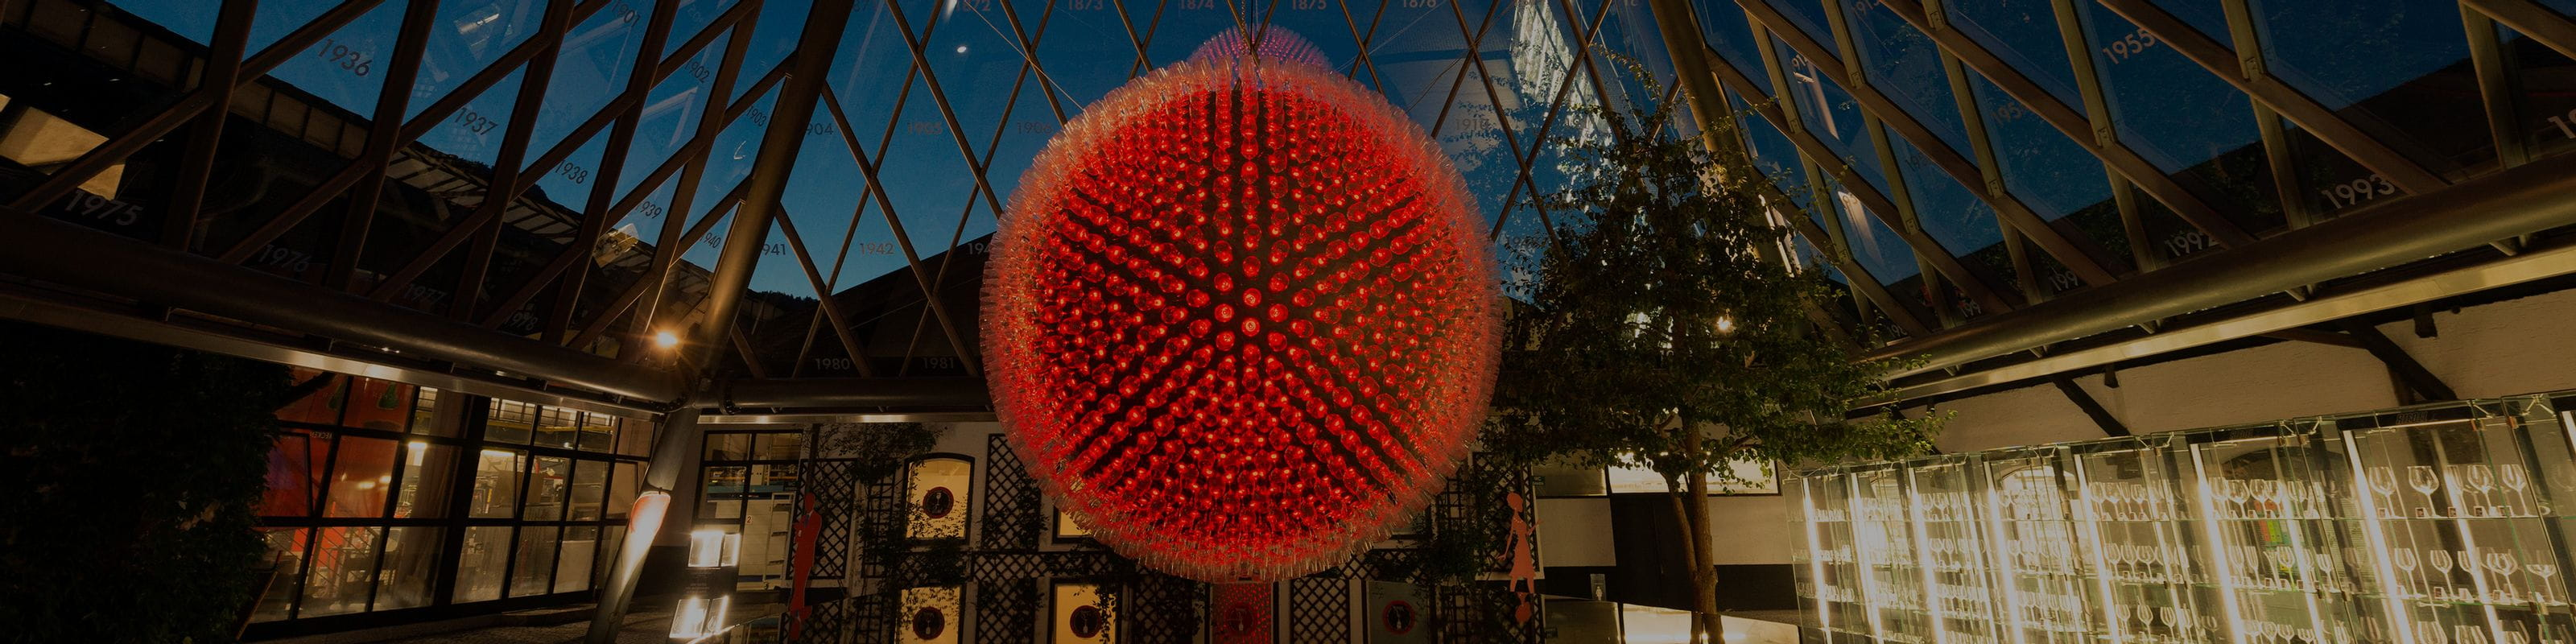 The RIEDEL glass globe lighted in red at the RIEDEL headquarter in Kufstein Austria.